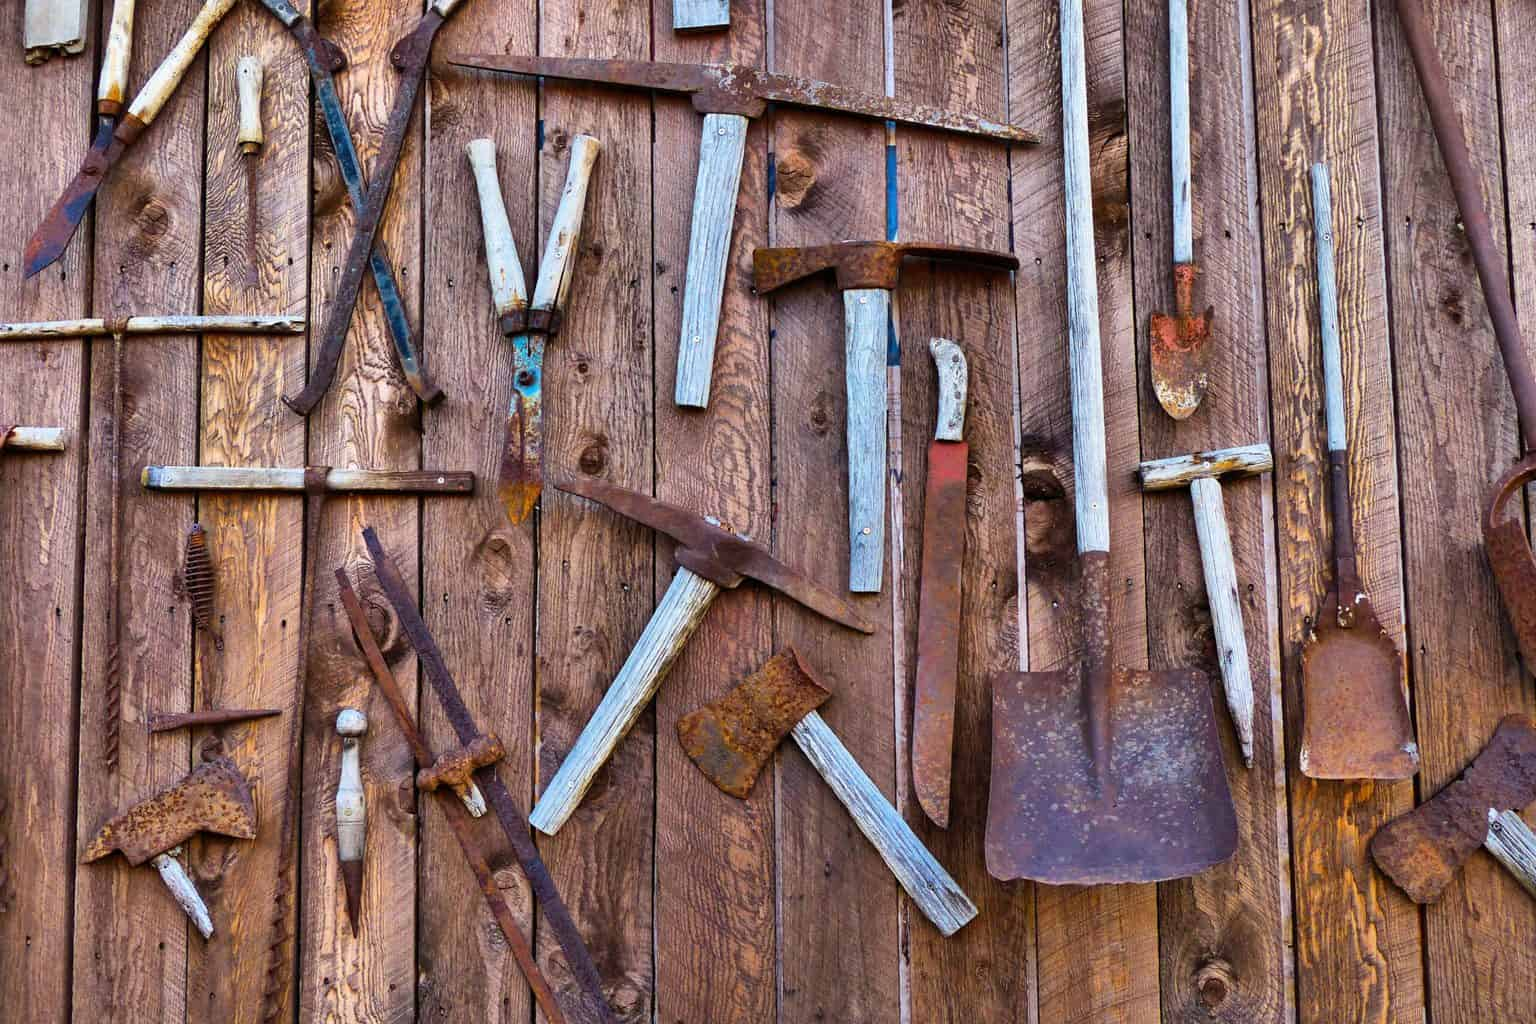 A rusty old set of tools